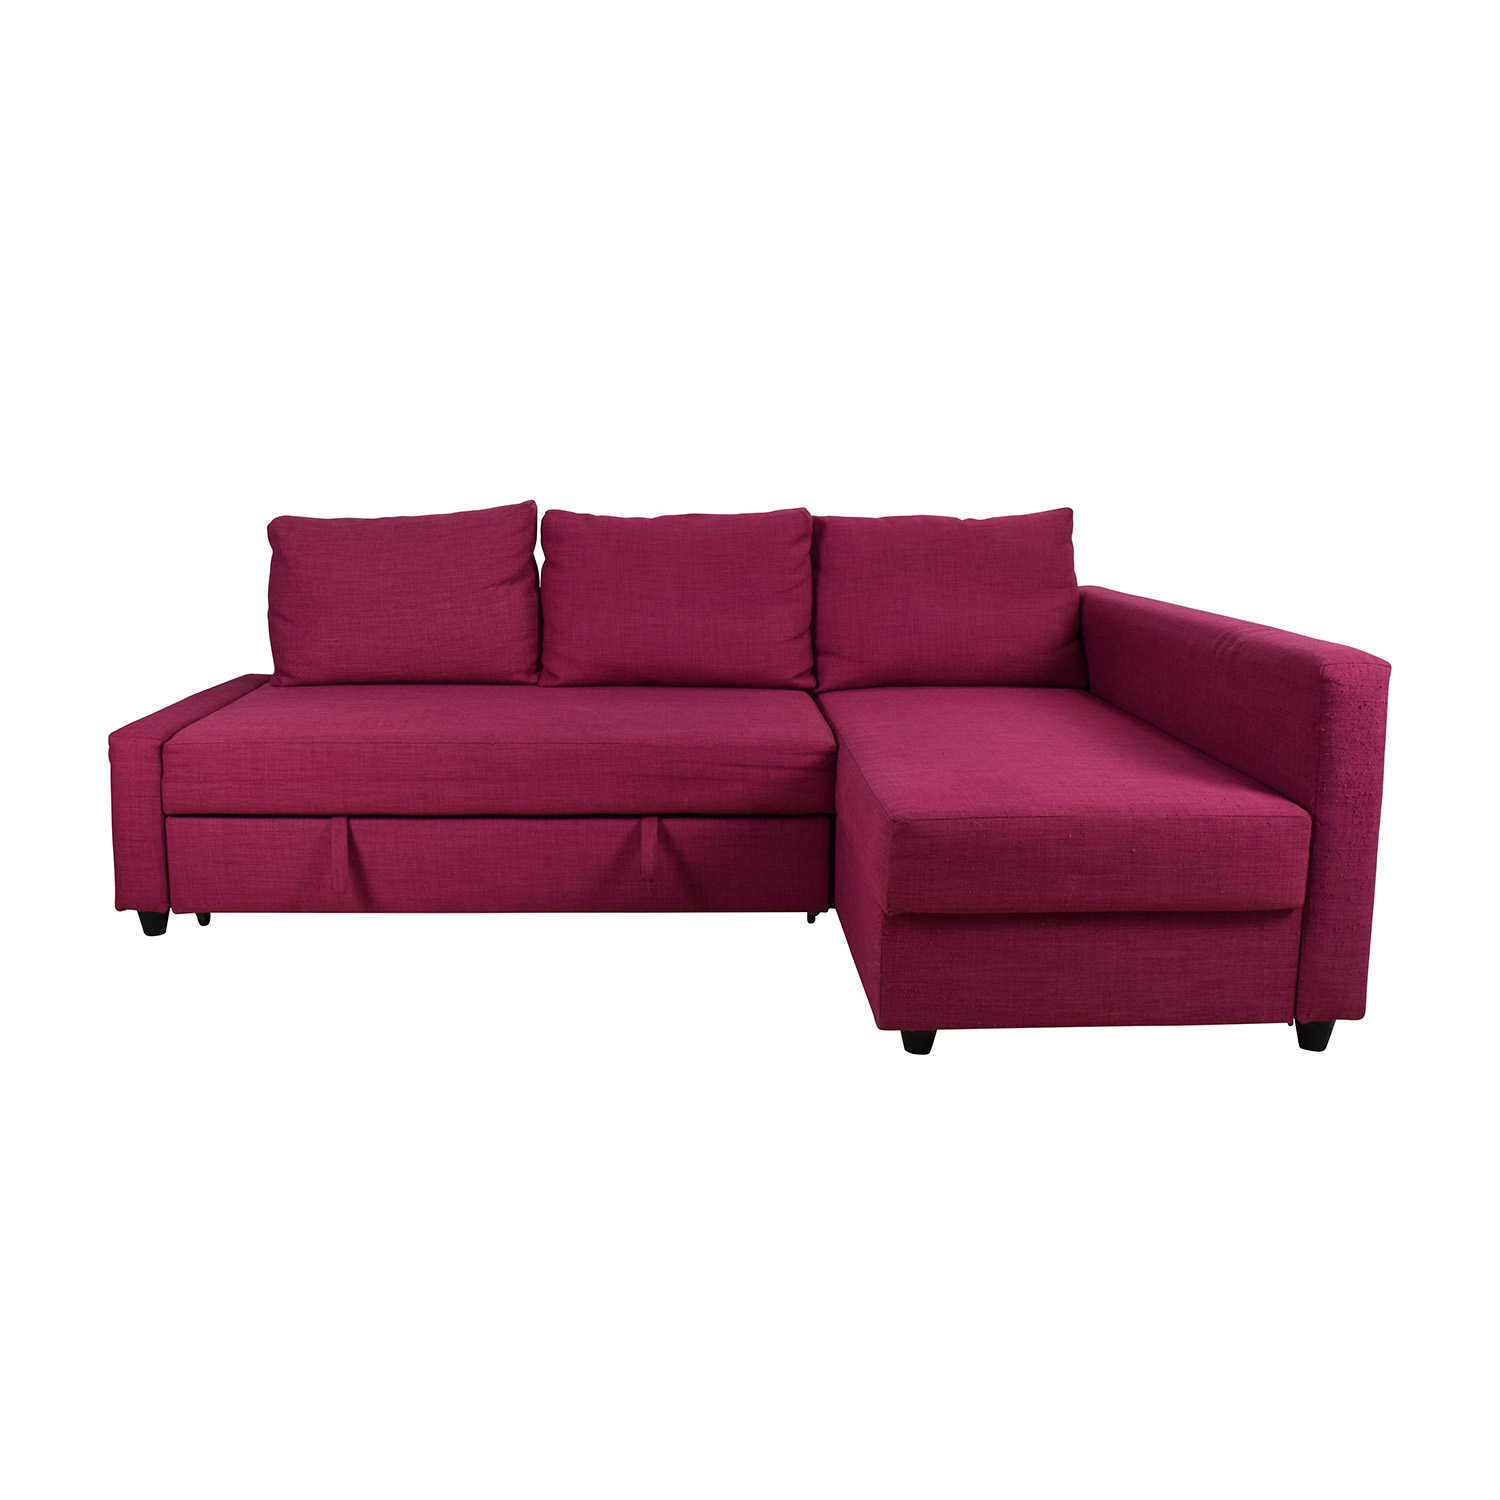 38% OFF Brown L Shaped Chaise Sectional Sofa Sofas